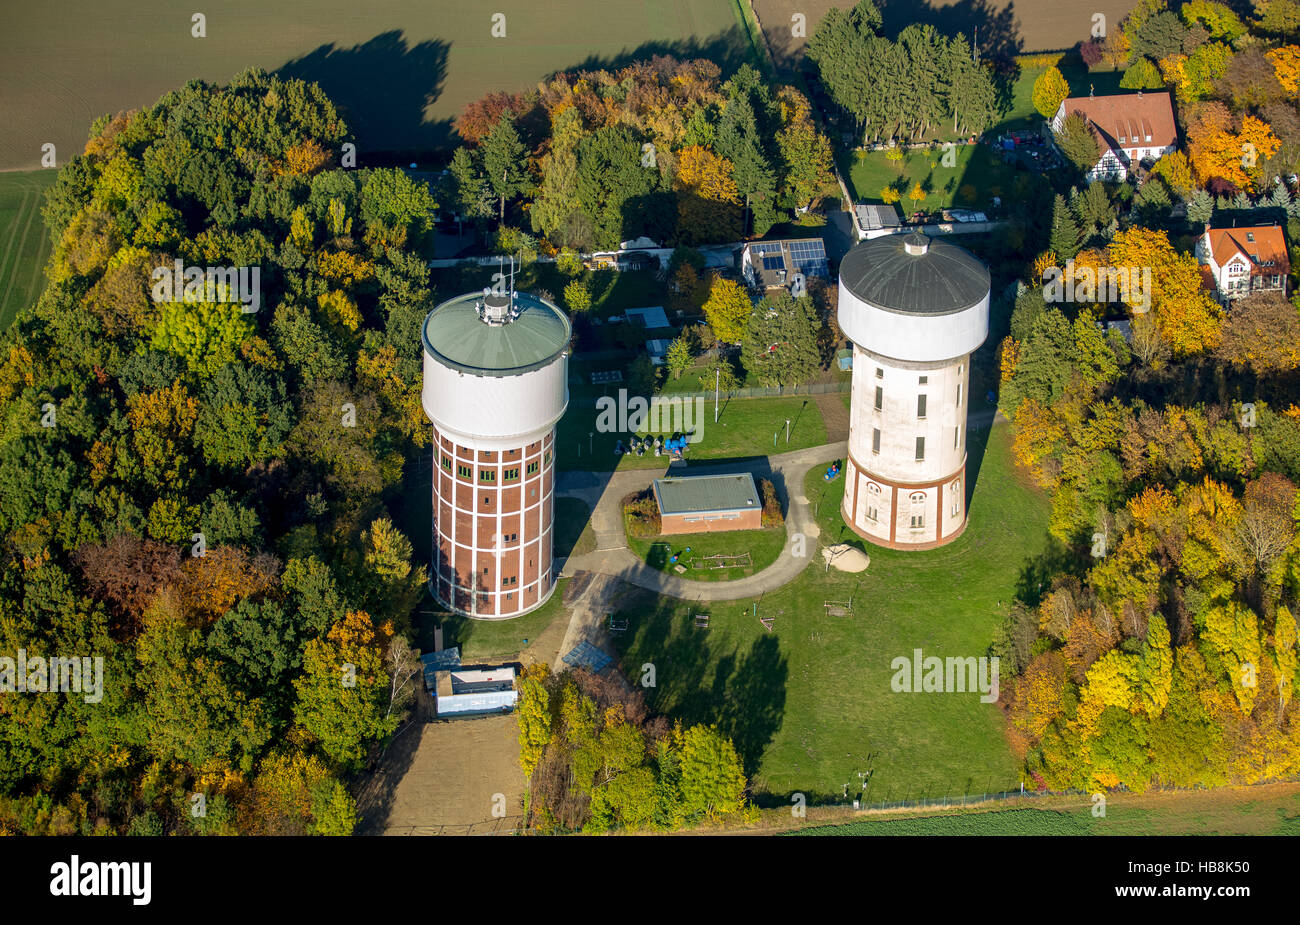 Aerial image, construction work on the water tower Hamm mountains, Hamm, Ruhr area, North Rhine-Westphalia, Germany - Stock Image